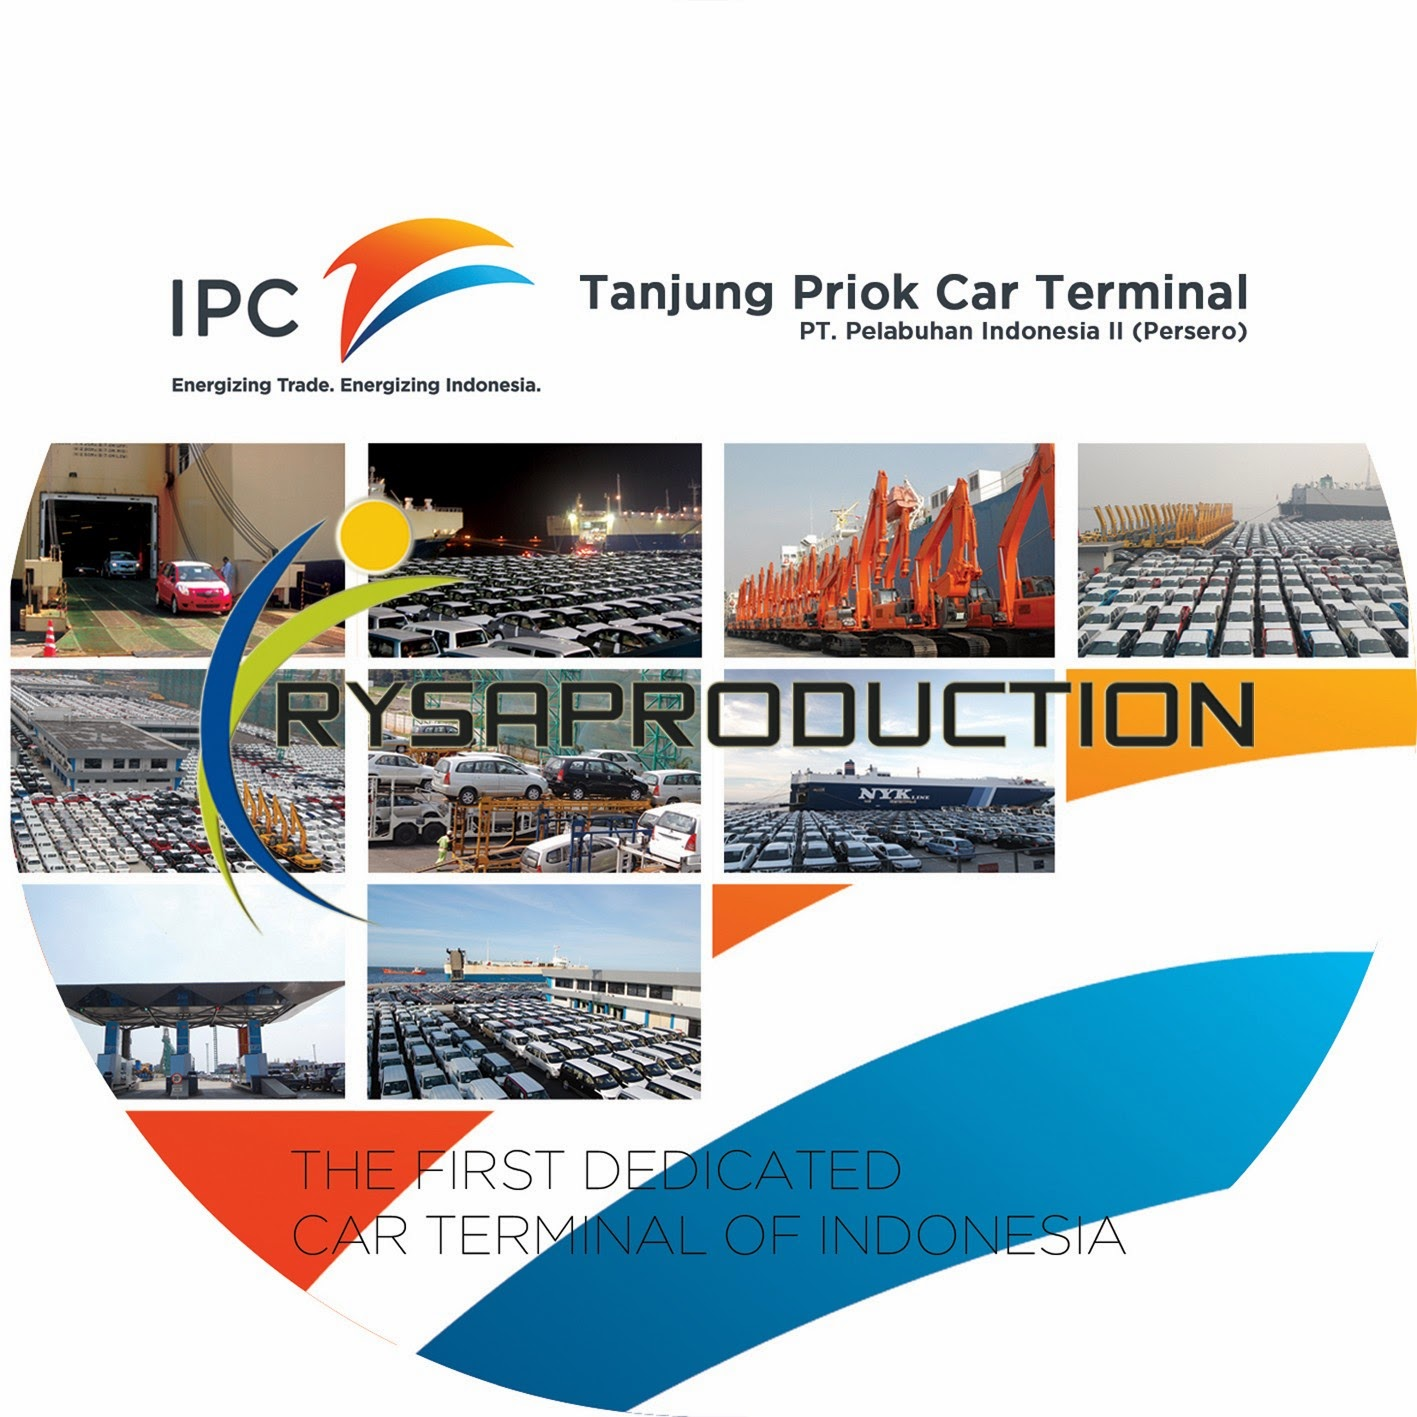 Tanjung Priok Car Terminal